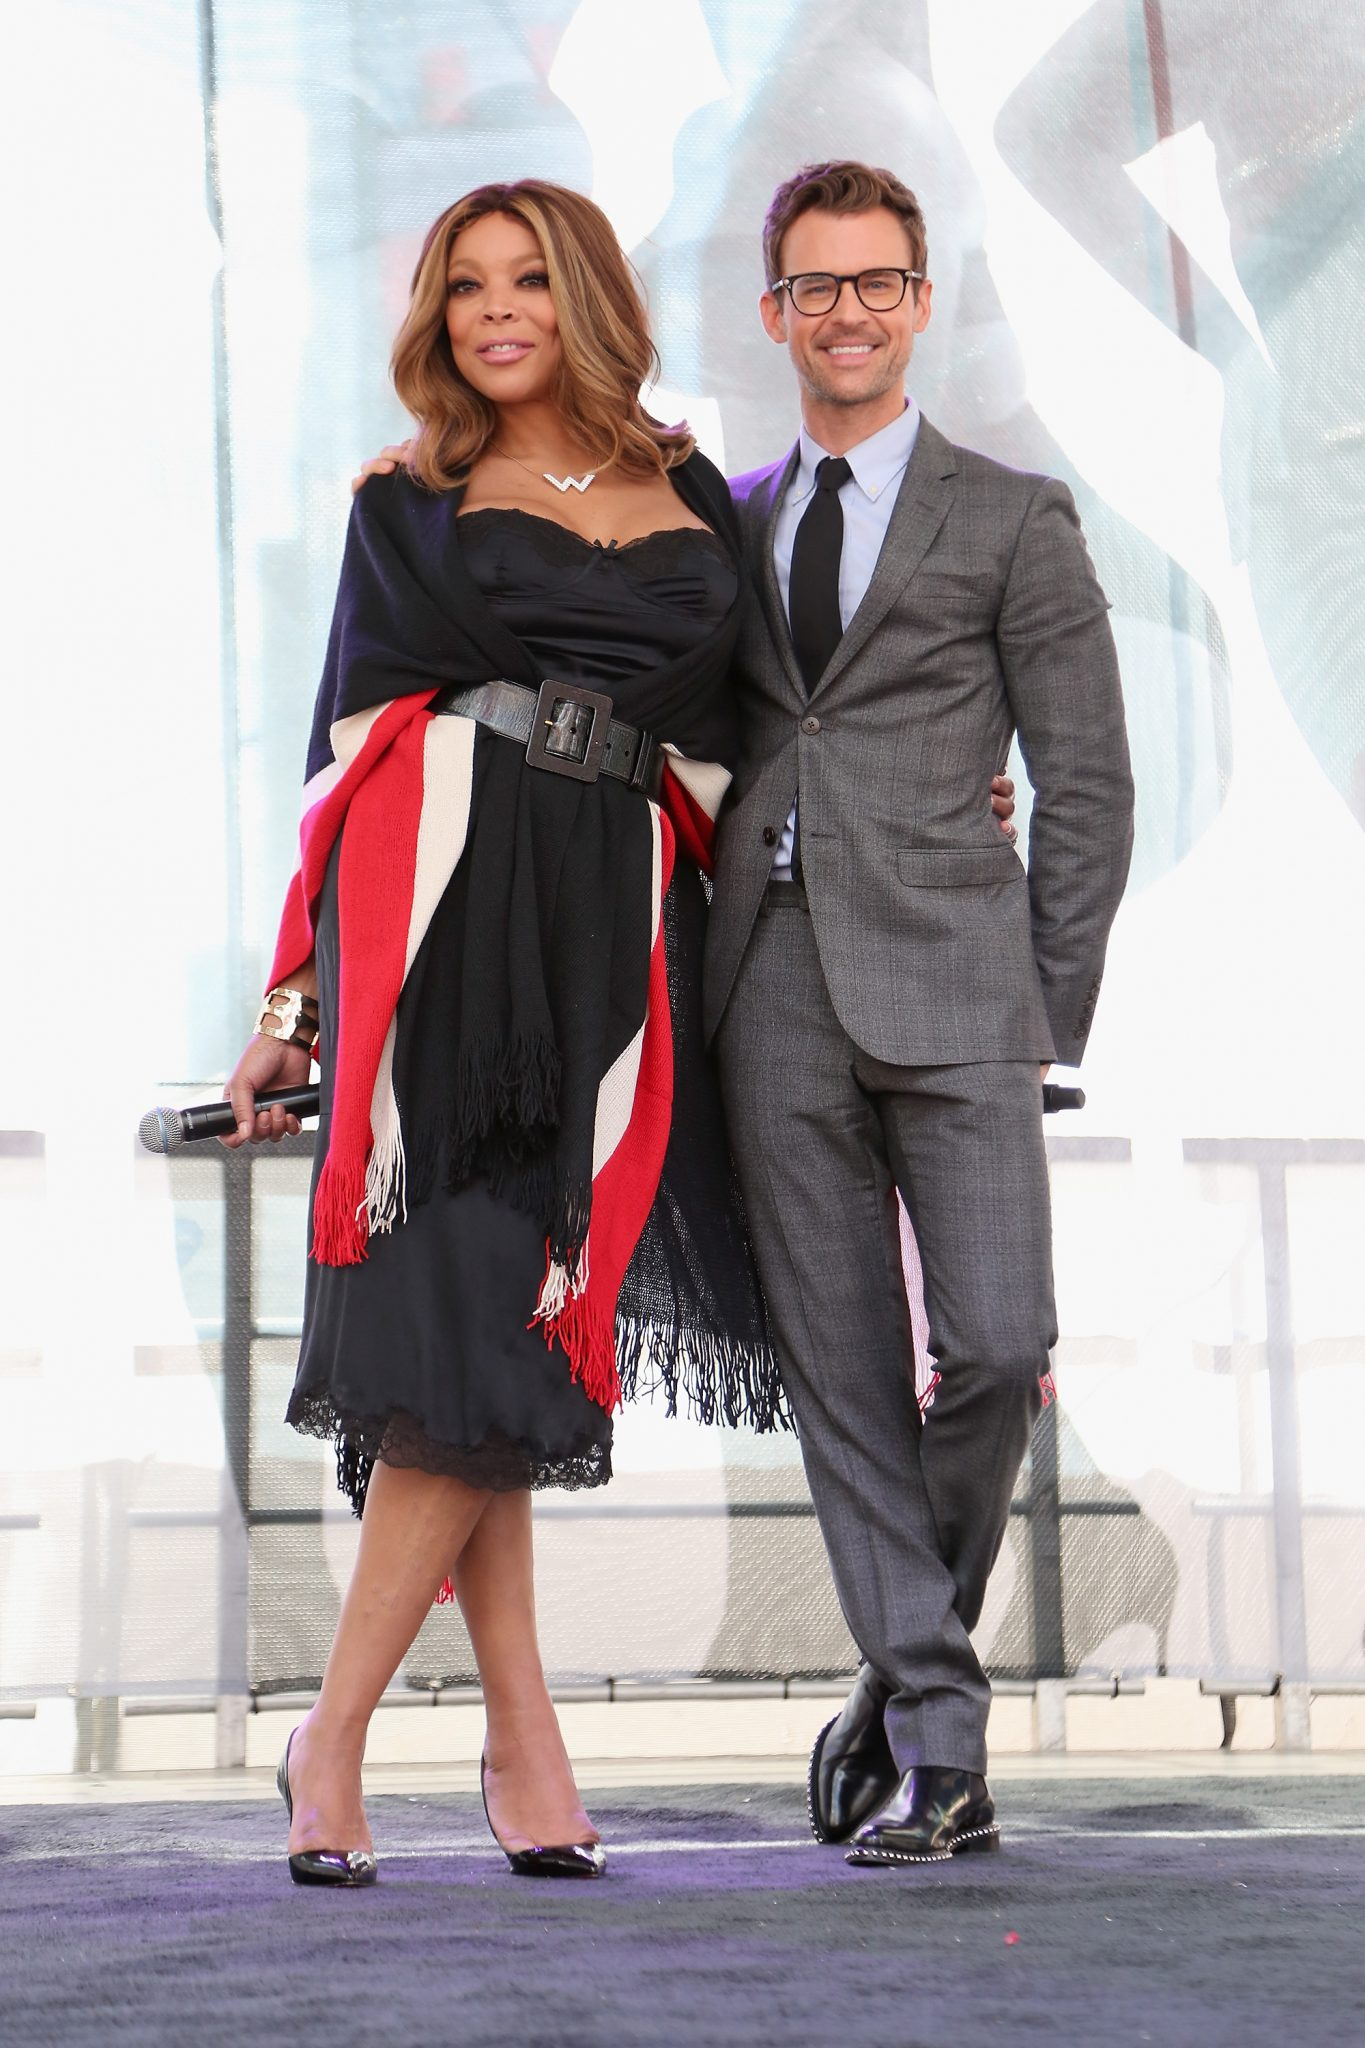 Wendy Williams And Brad Goreski Join Lane Bryant In Launching #PlusIsEqual Campaign In Times Square